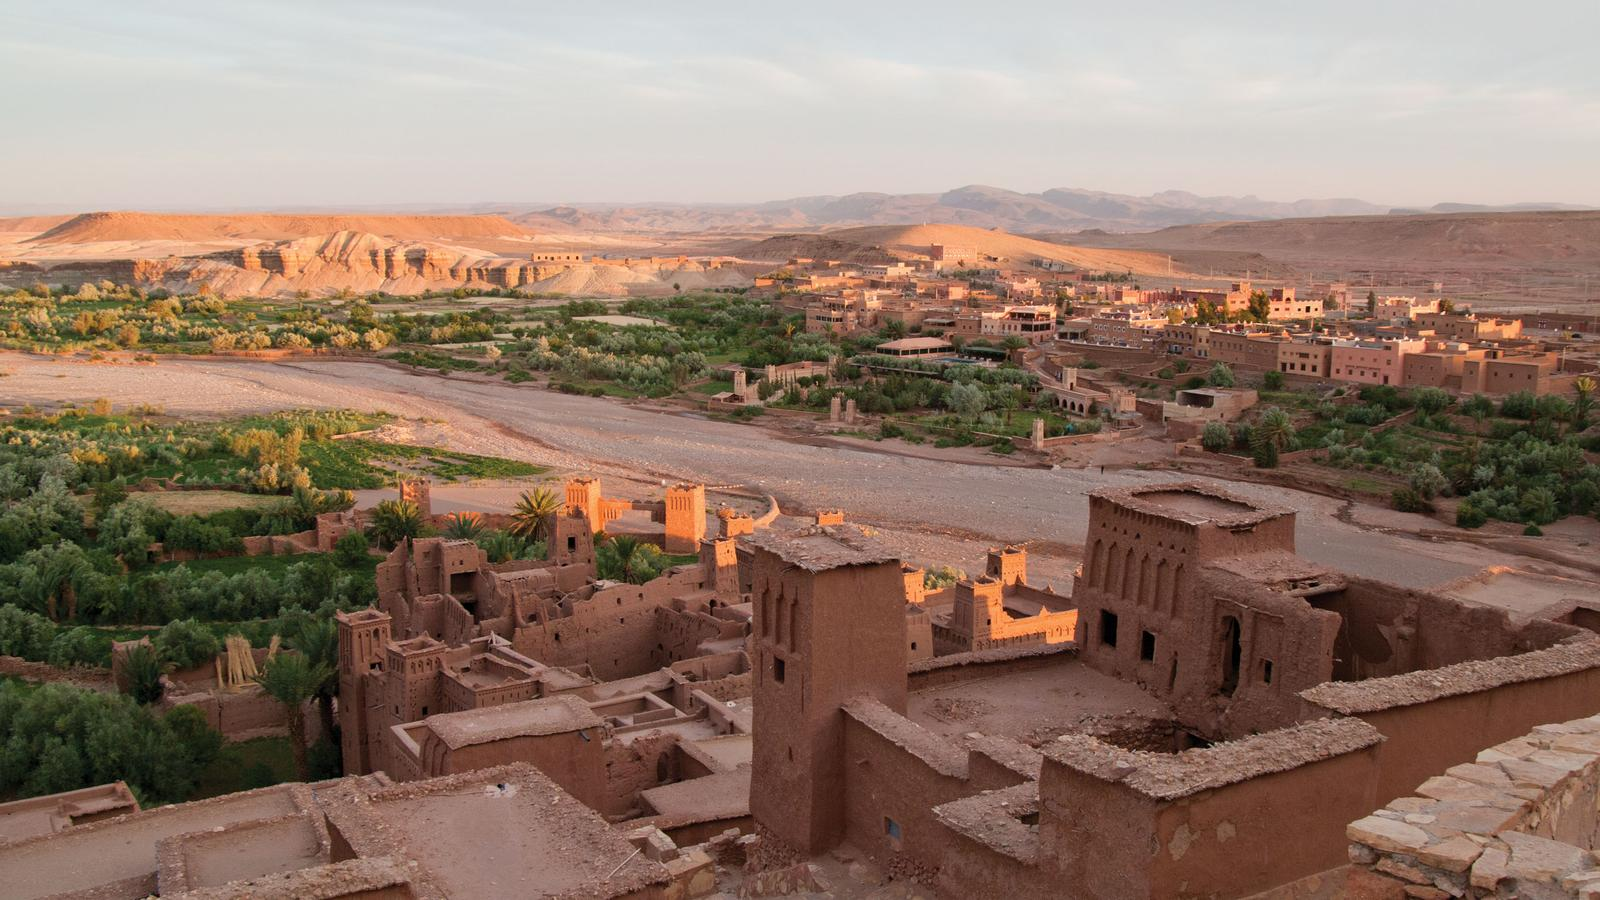 Morocco: Sahara & Beyond in Morocco, North Africa / Middle East - G ...